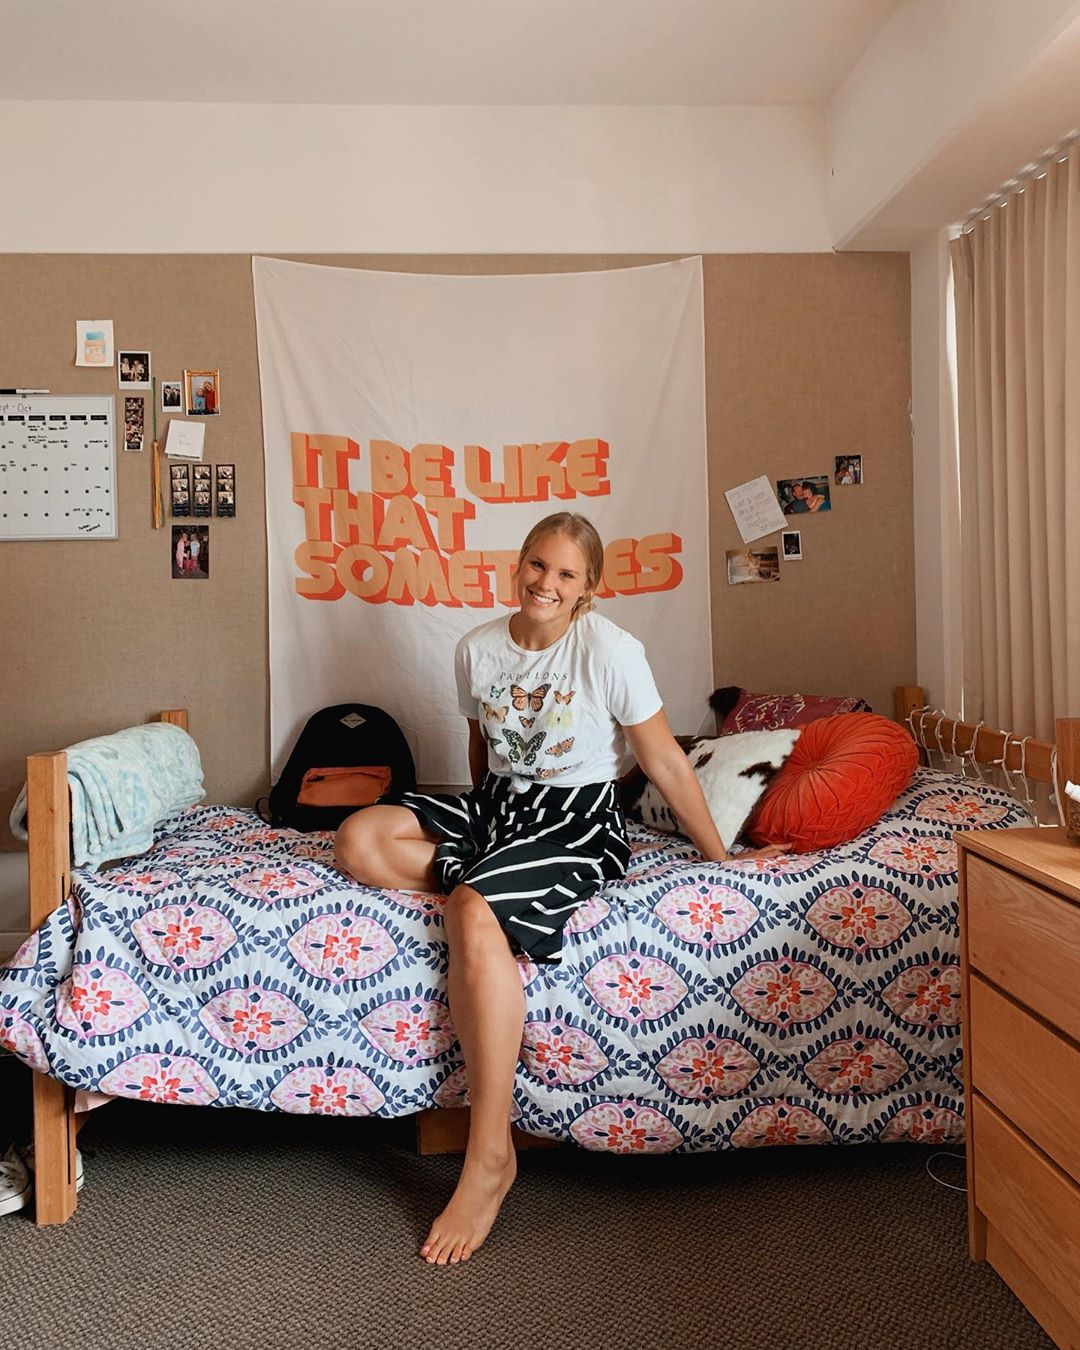 dorm room at UCLA with blue and orange bedspread. Orange words tapestry behind smiling female student posing on bed